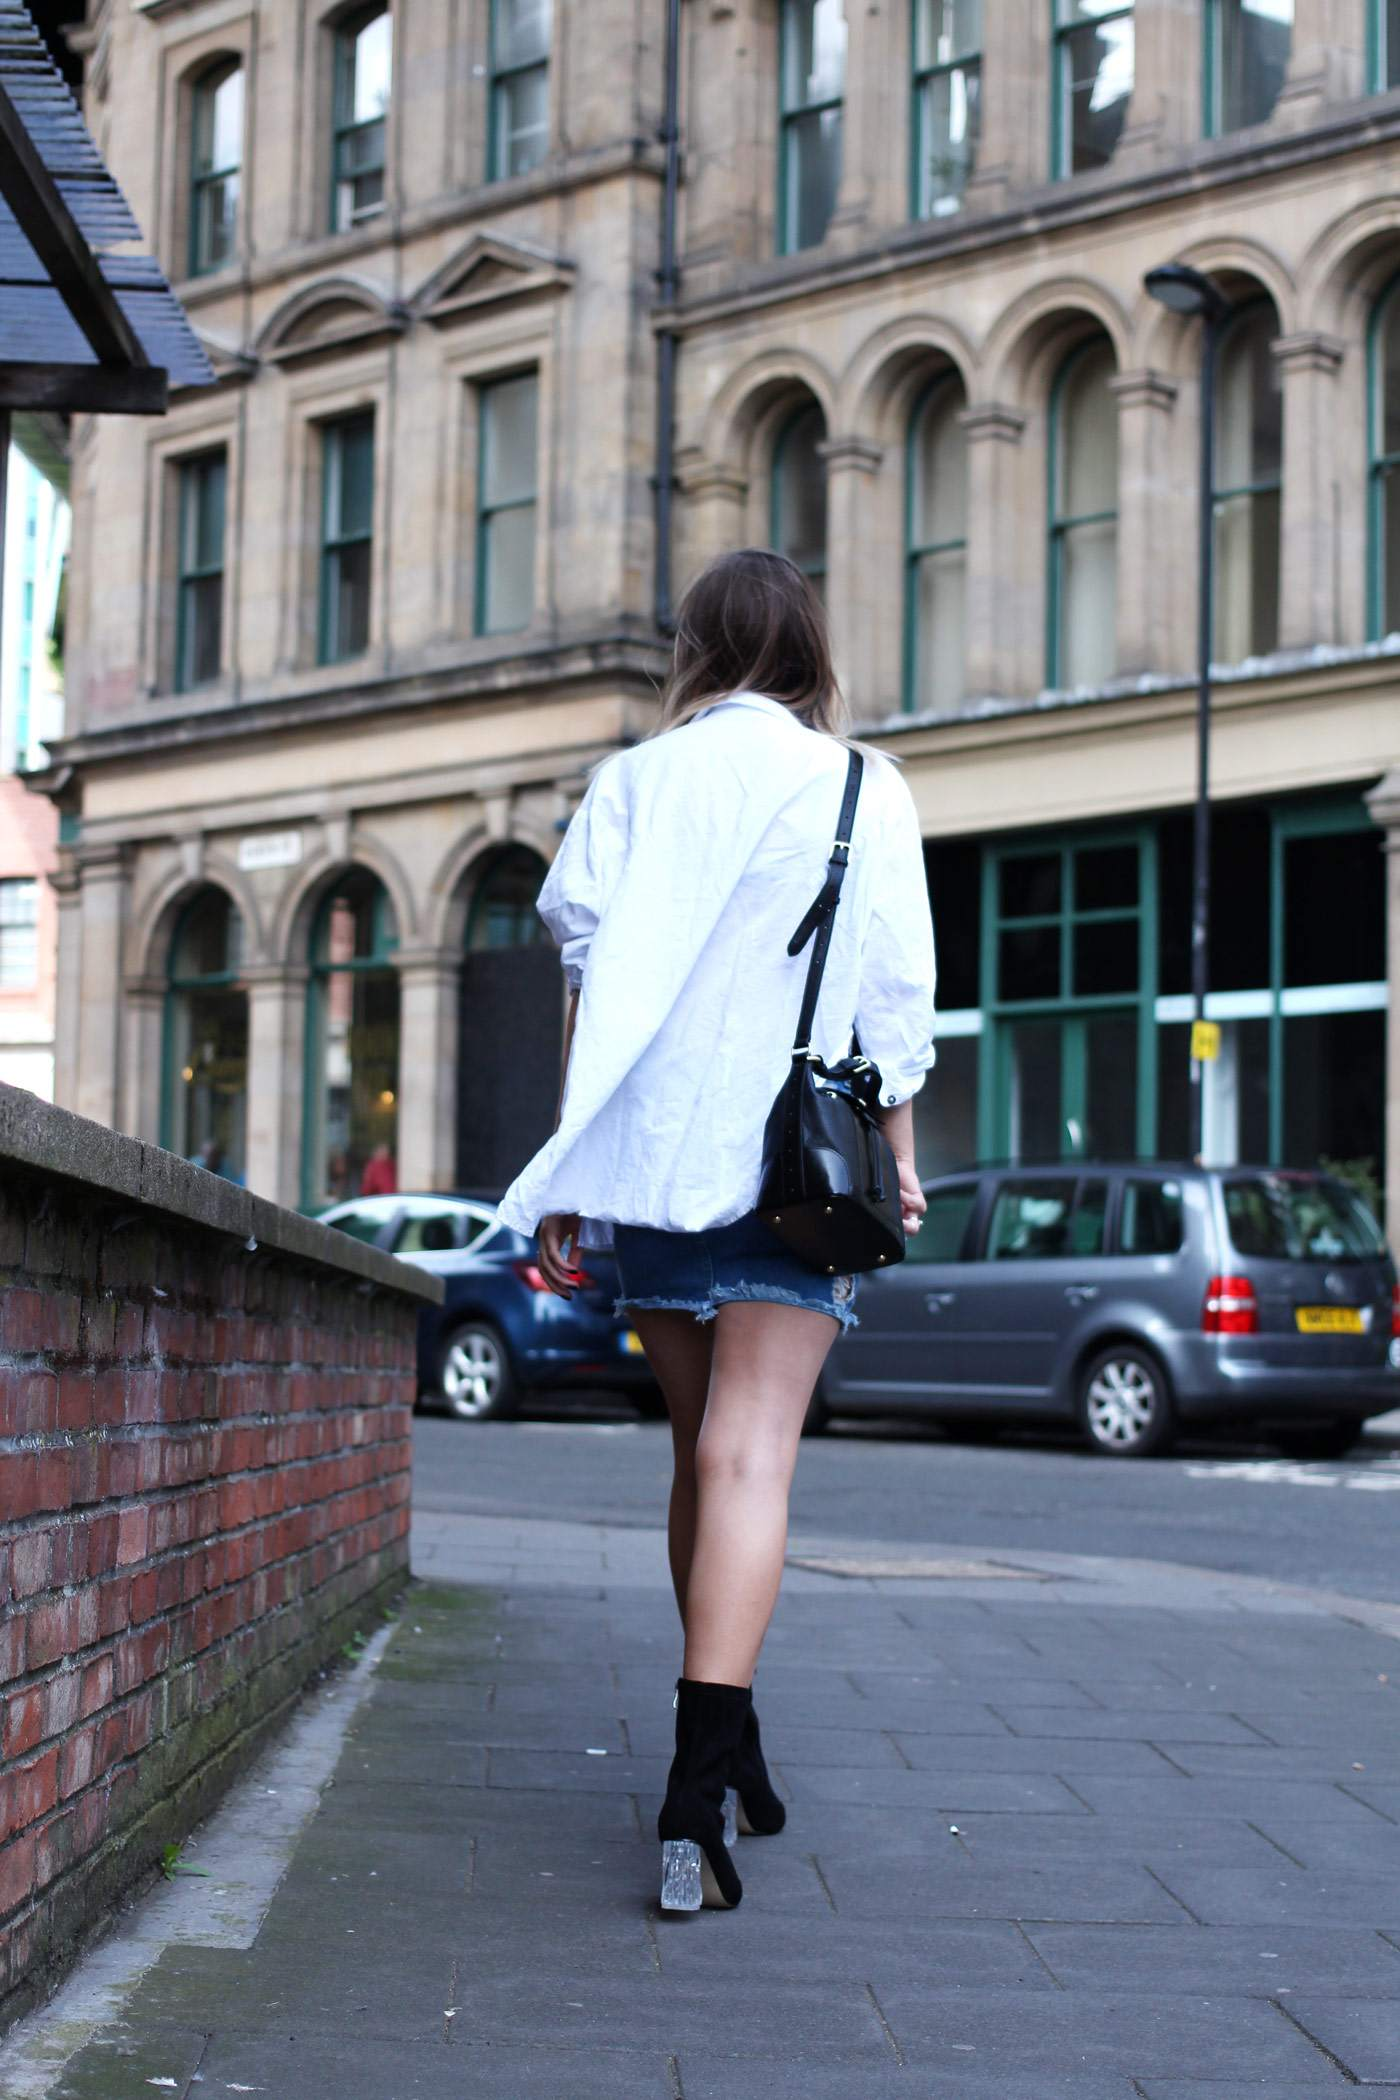 ego-boots-denim-skirt-oversized-white-shirt-radley-bag-2